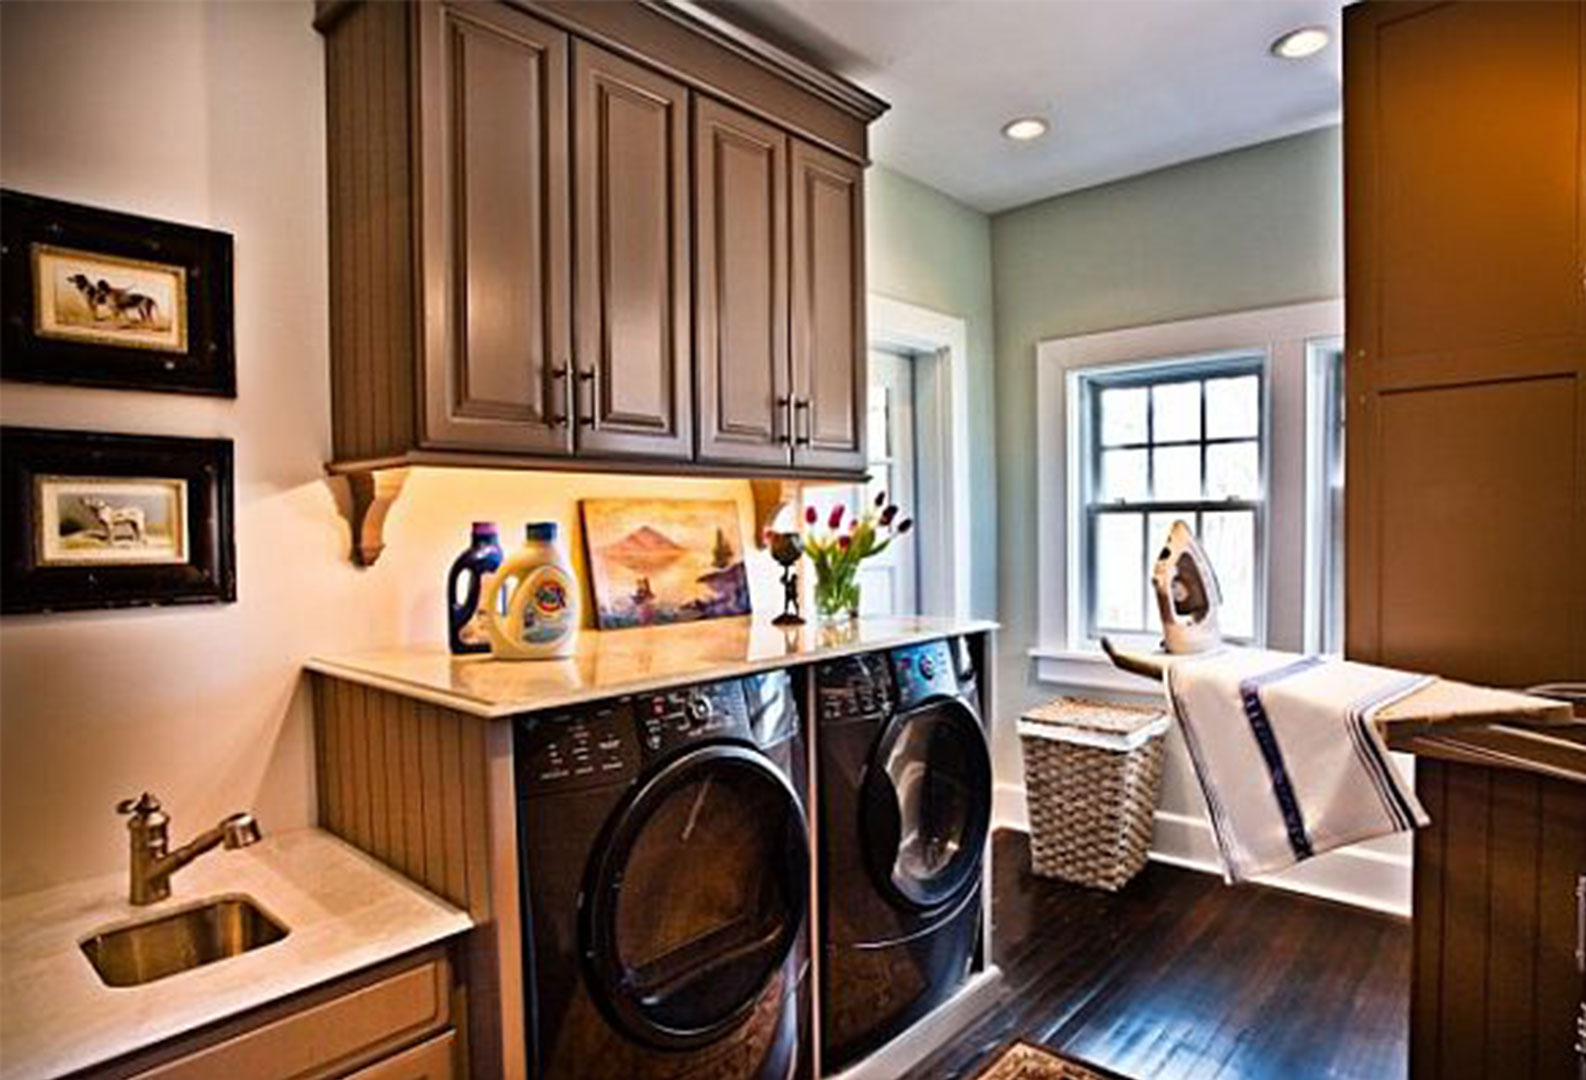 25 Brilliantly Clever Laundry Room Design Ideas on Laundry Decor Ideas  id=31624